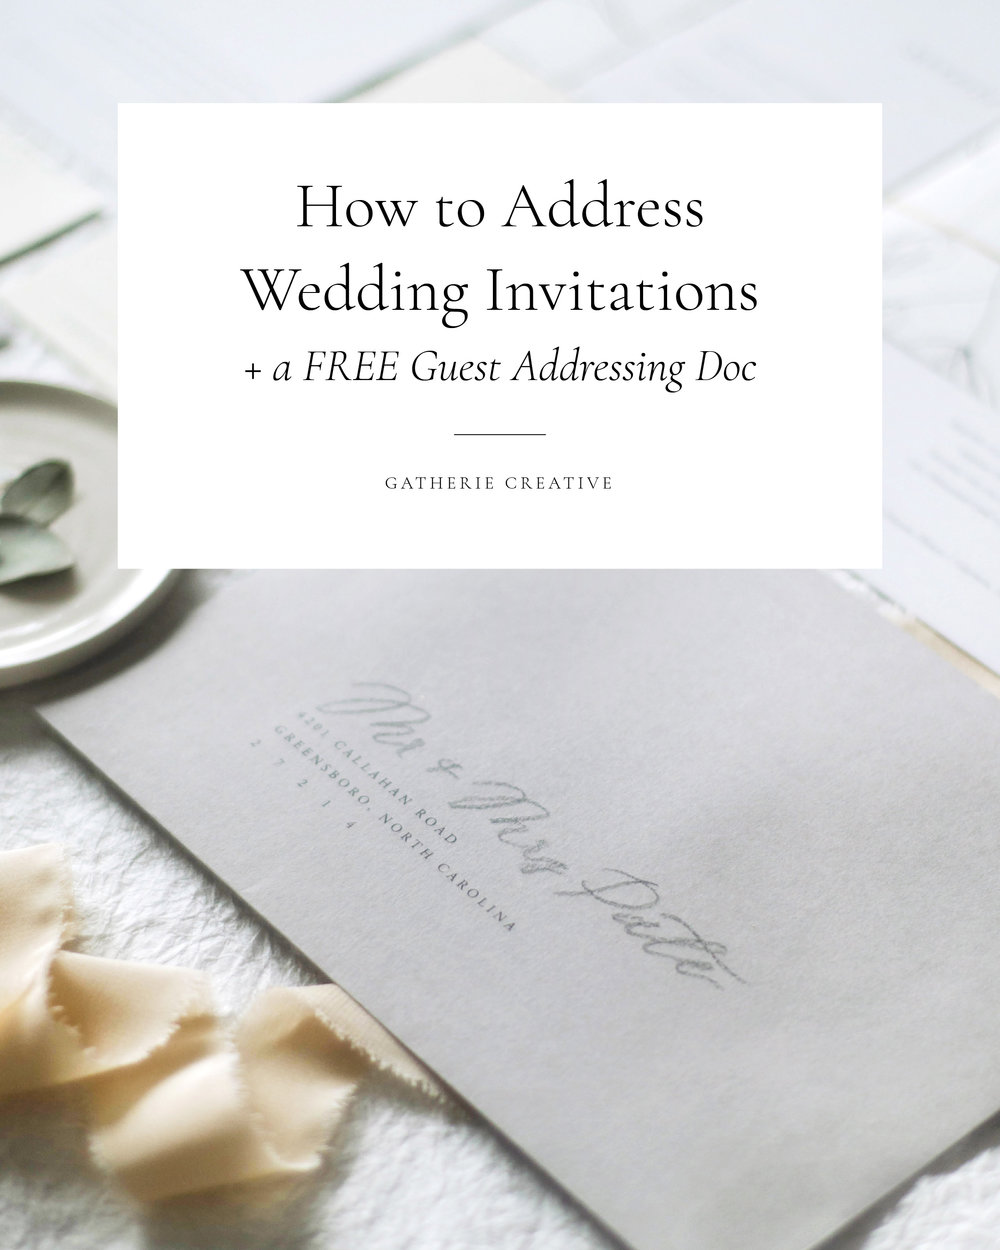 Gatherie Creative — HOW TO ADDRESS WEDDING INVITATIONS + A FREE TEMPLATE